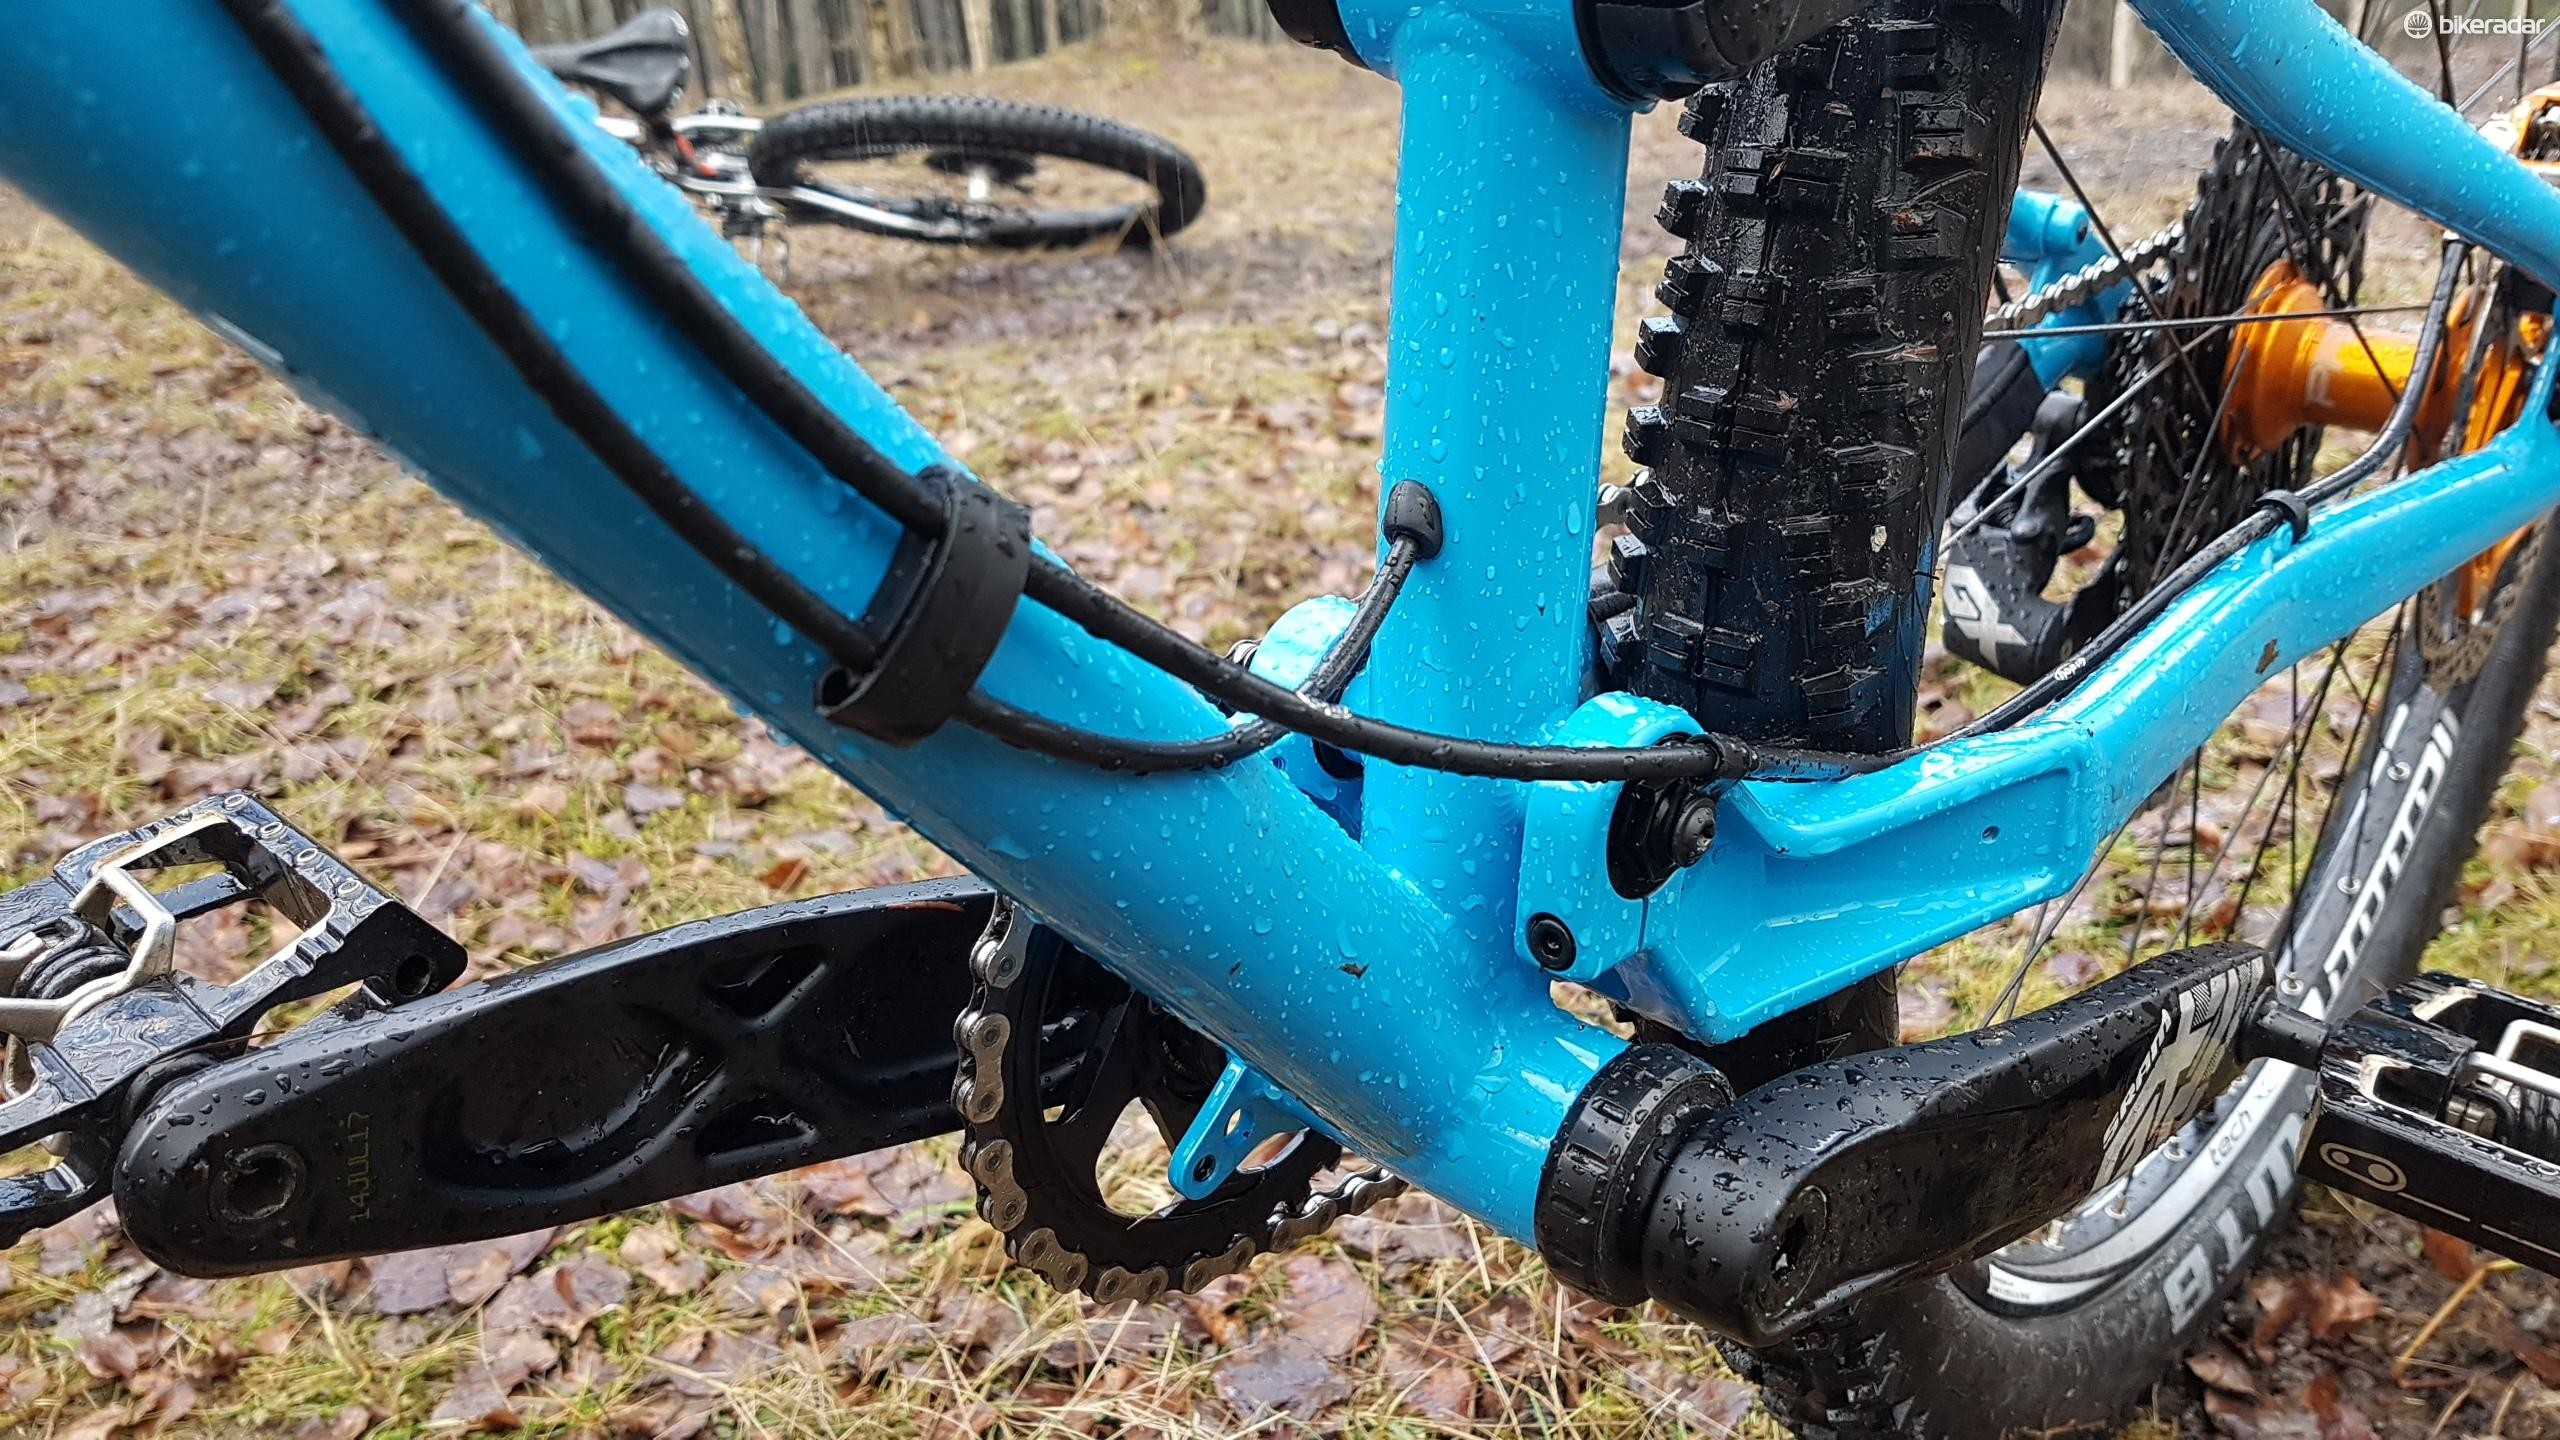 External cable routing will draw fans, as will the neat routing clips and fixings